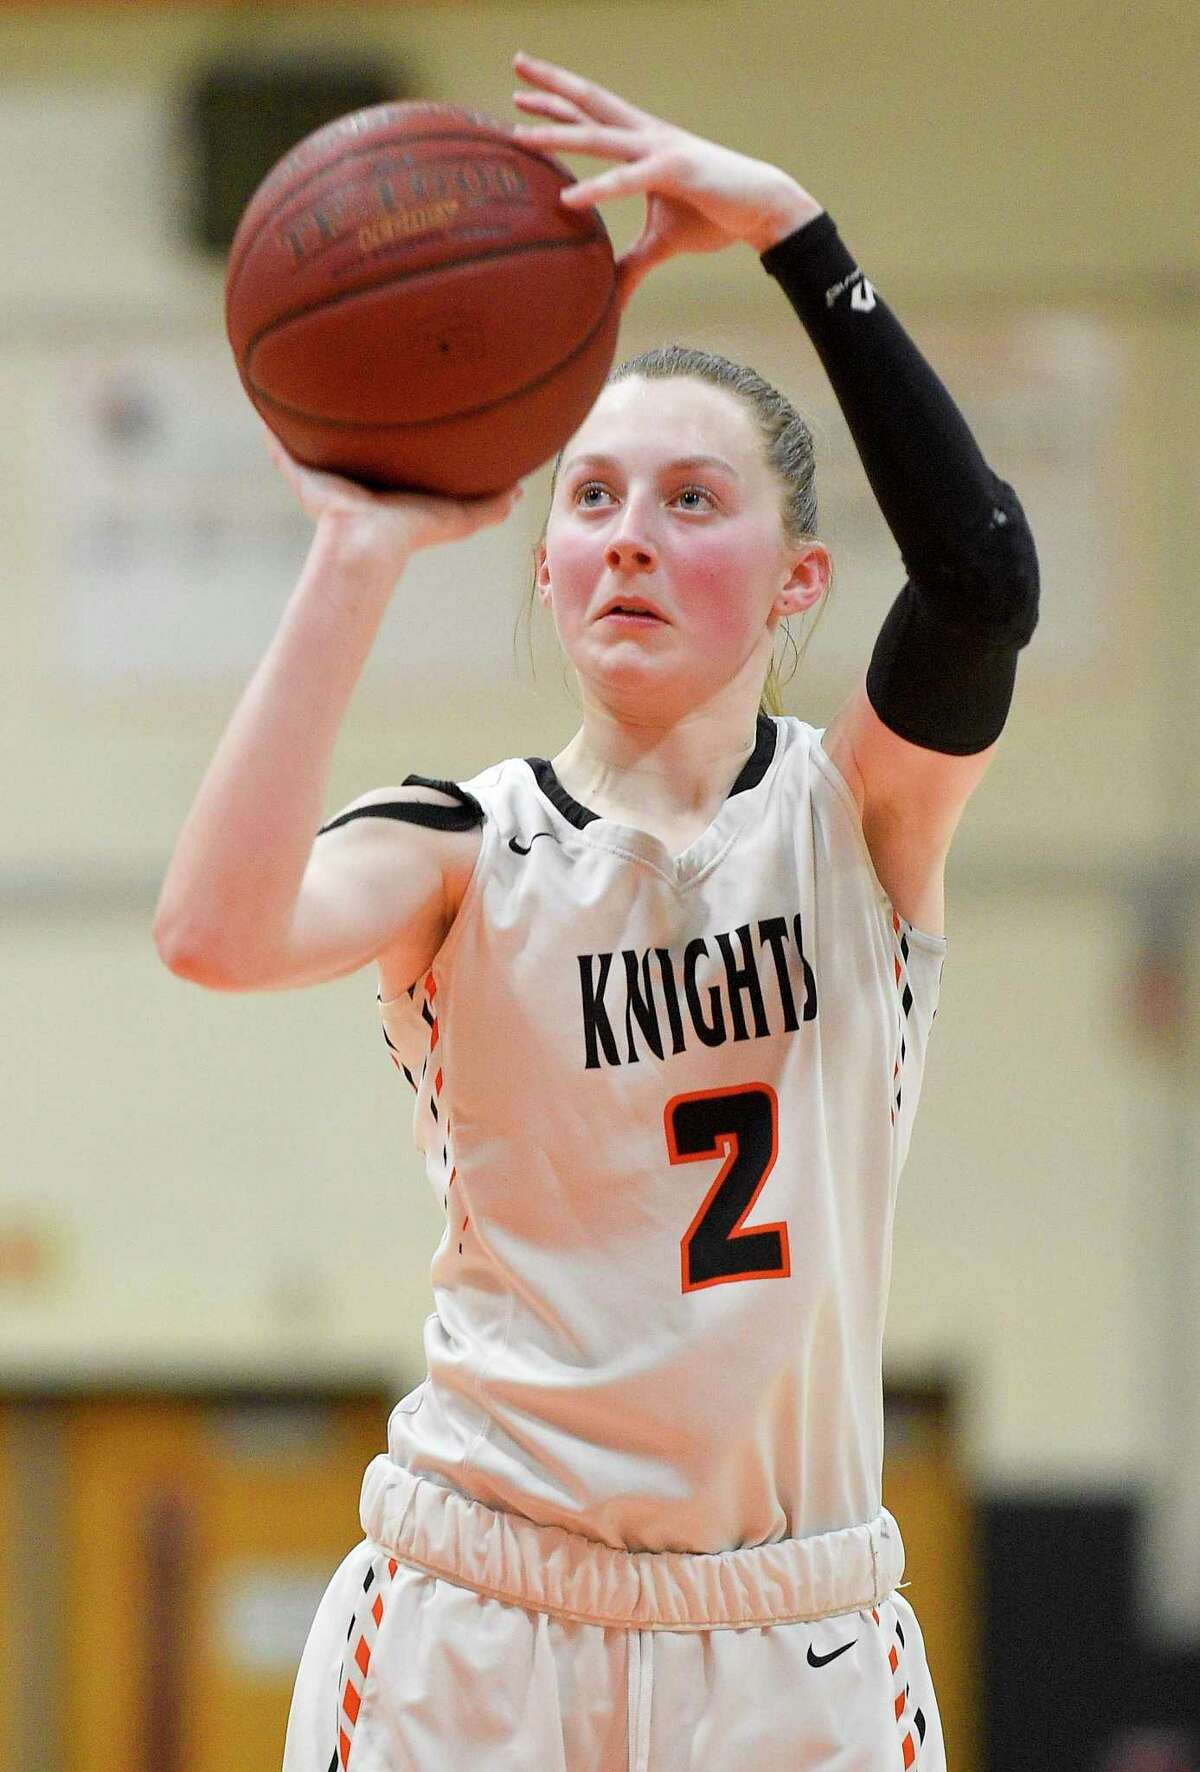 Stamford's Megan Landsiedel (2) in action against Fairfield Ludlowe in a girls basketball game on Jan. 10, 2020 in Stamford, Connecticut. Landsiedel lead the Lady Black Knights with 13 points in their 37-32 win over the Lady Falcons.